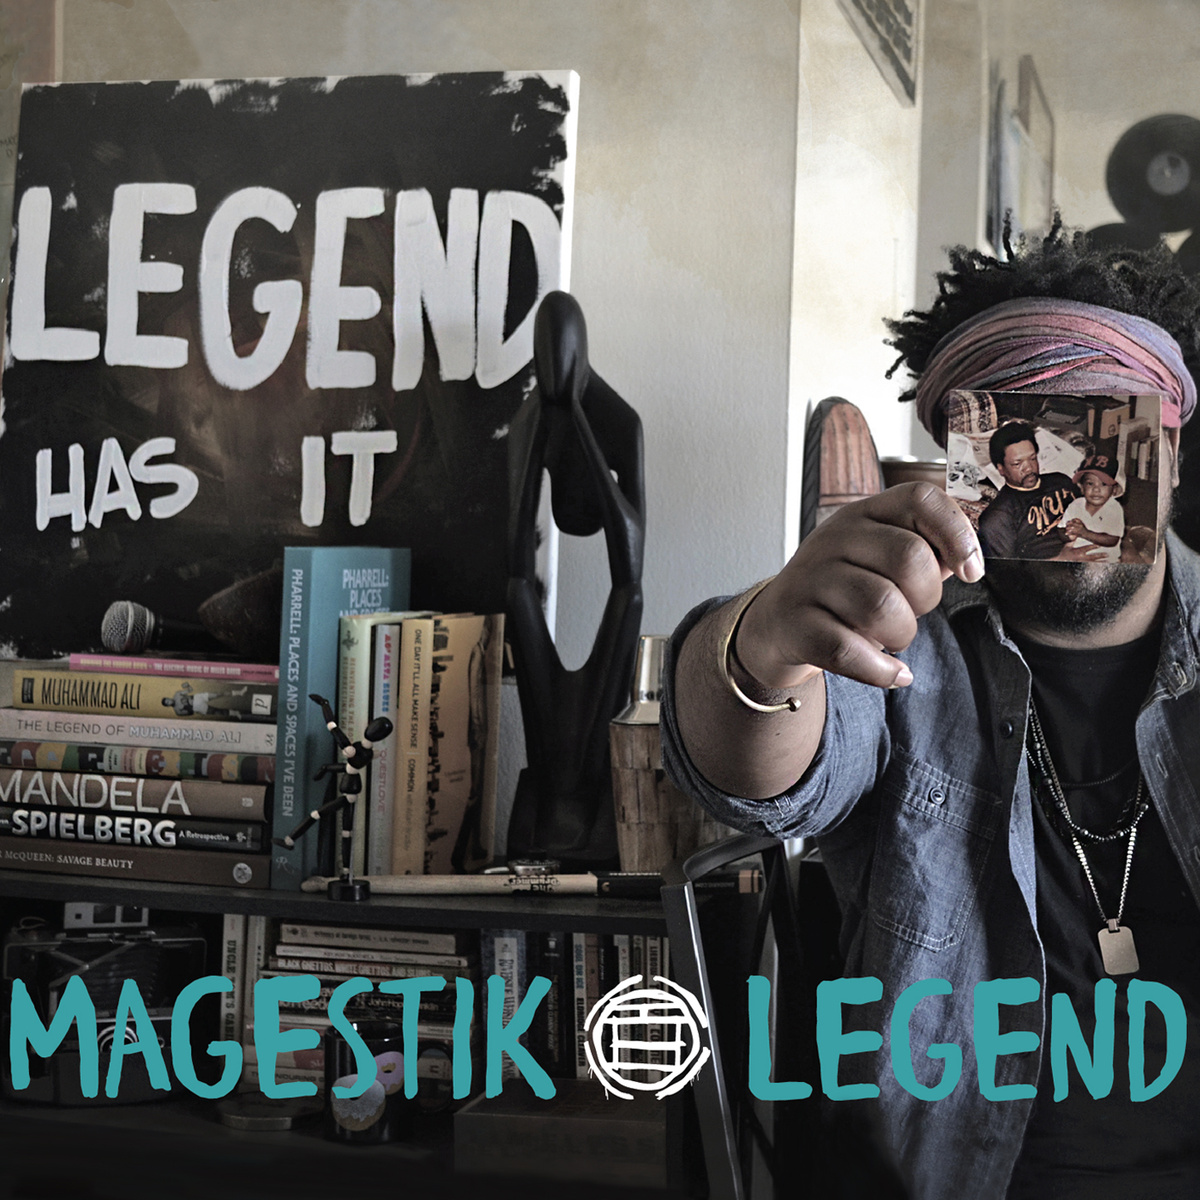 Magestik_legend_presenta_legend_has_it